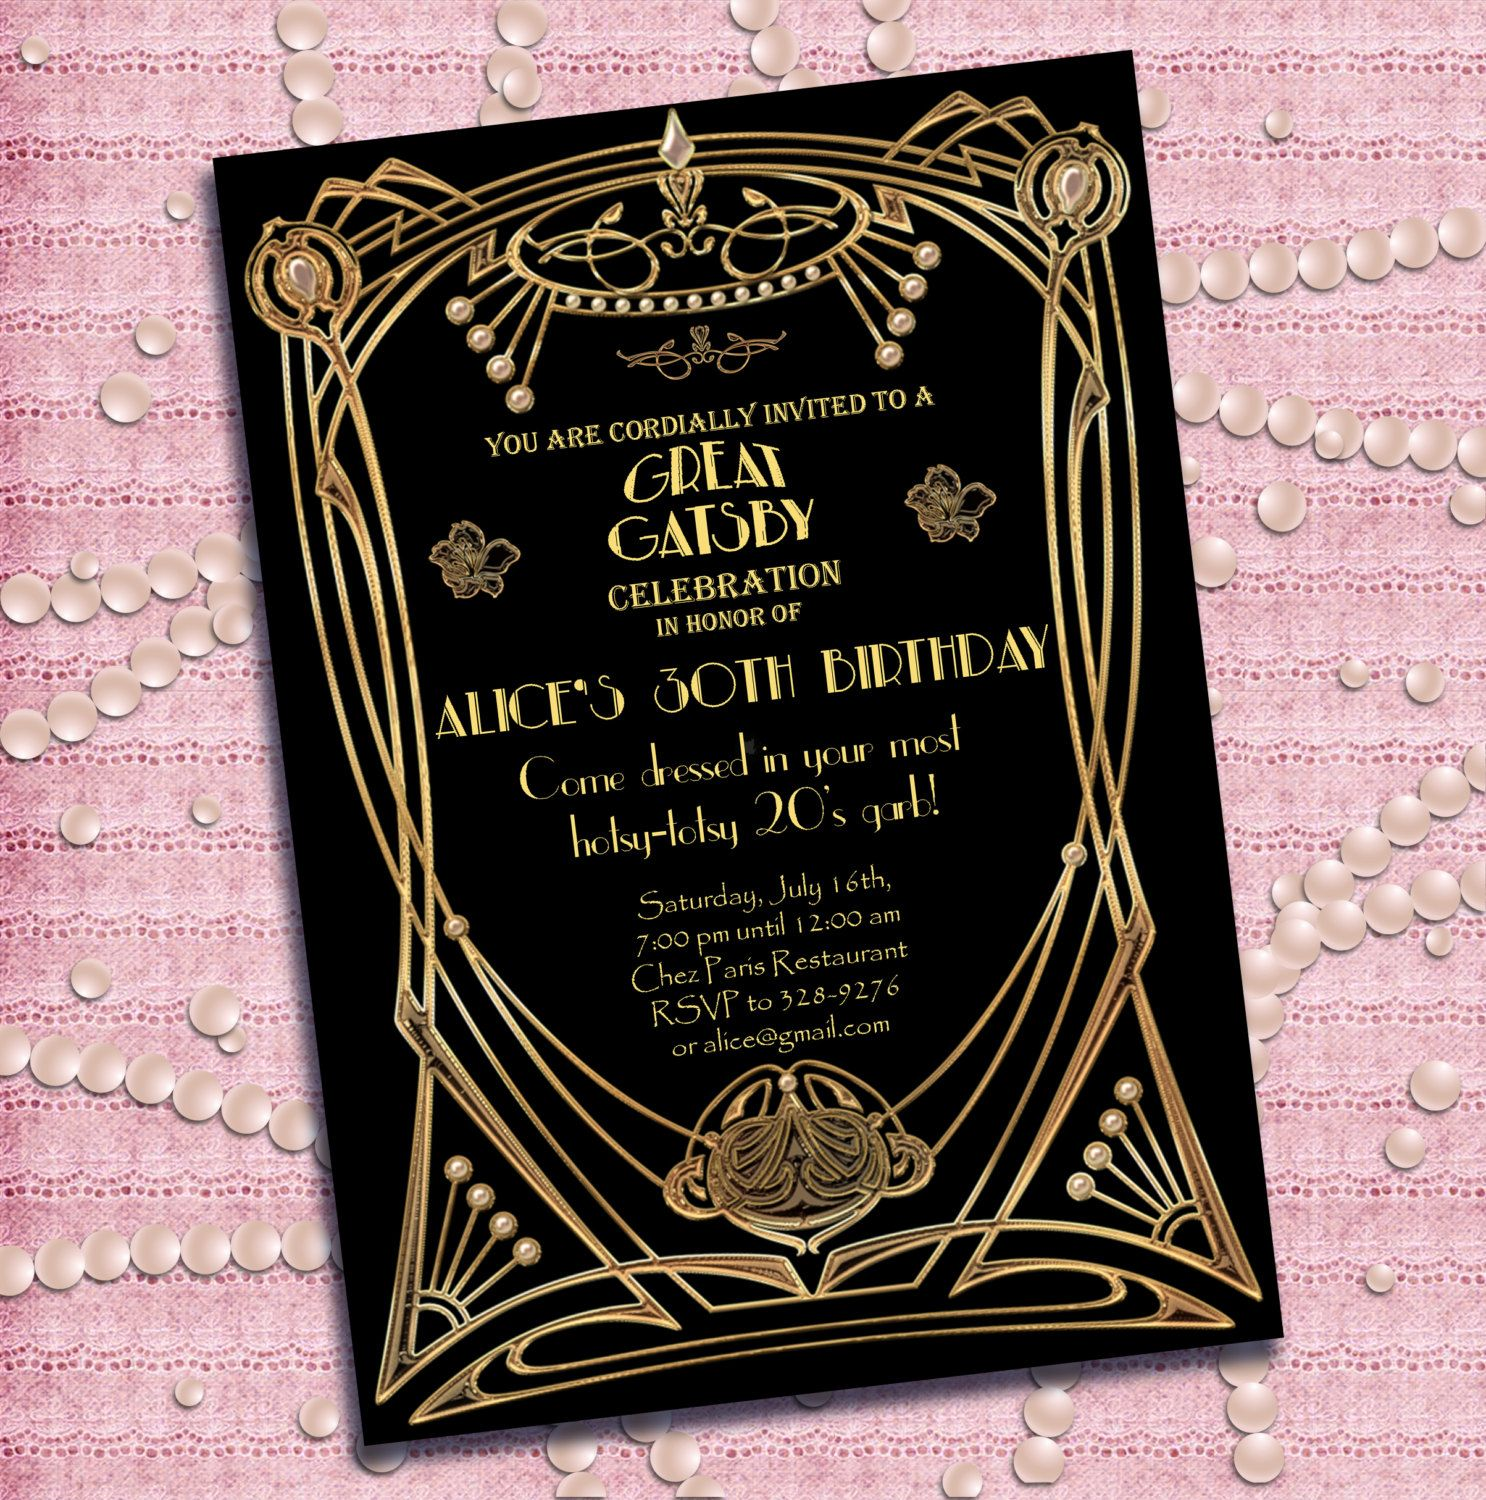 Great Gatsby Party | Great Gatsby Party Invitations Great gatsby ...